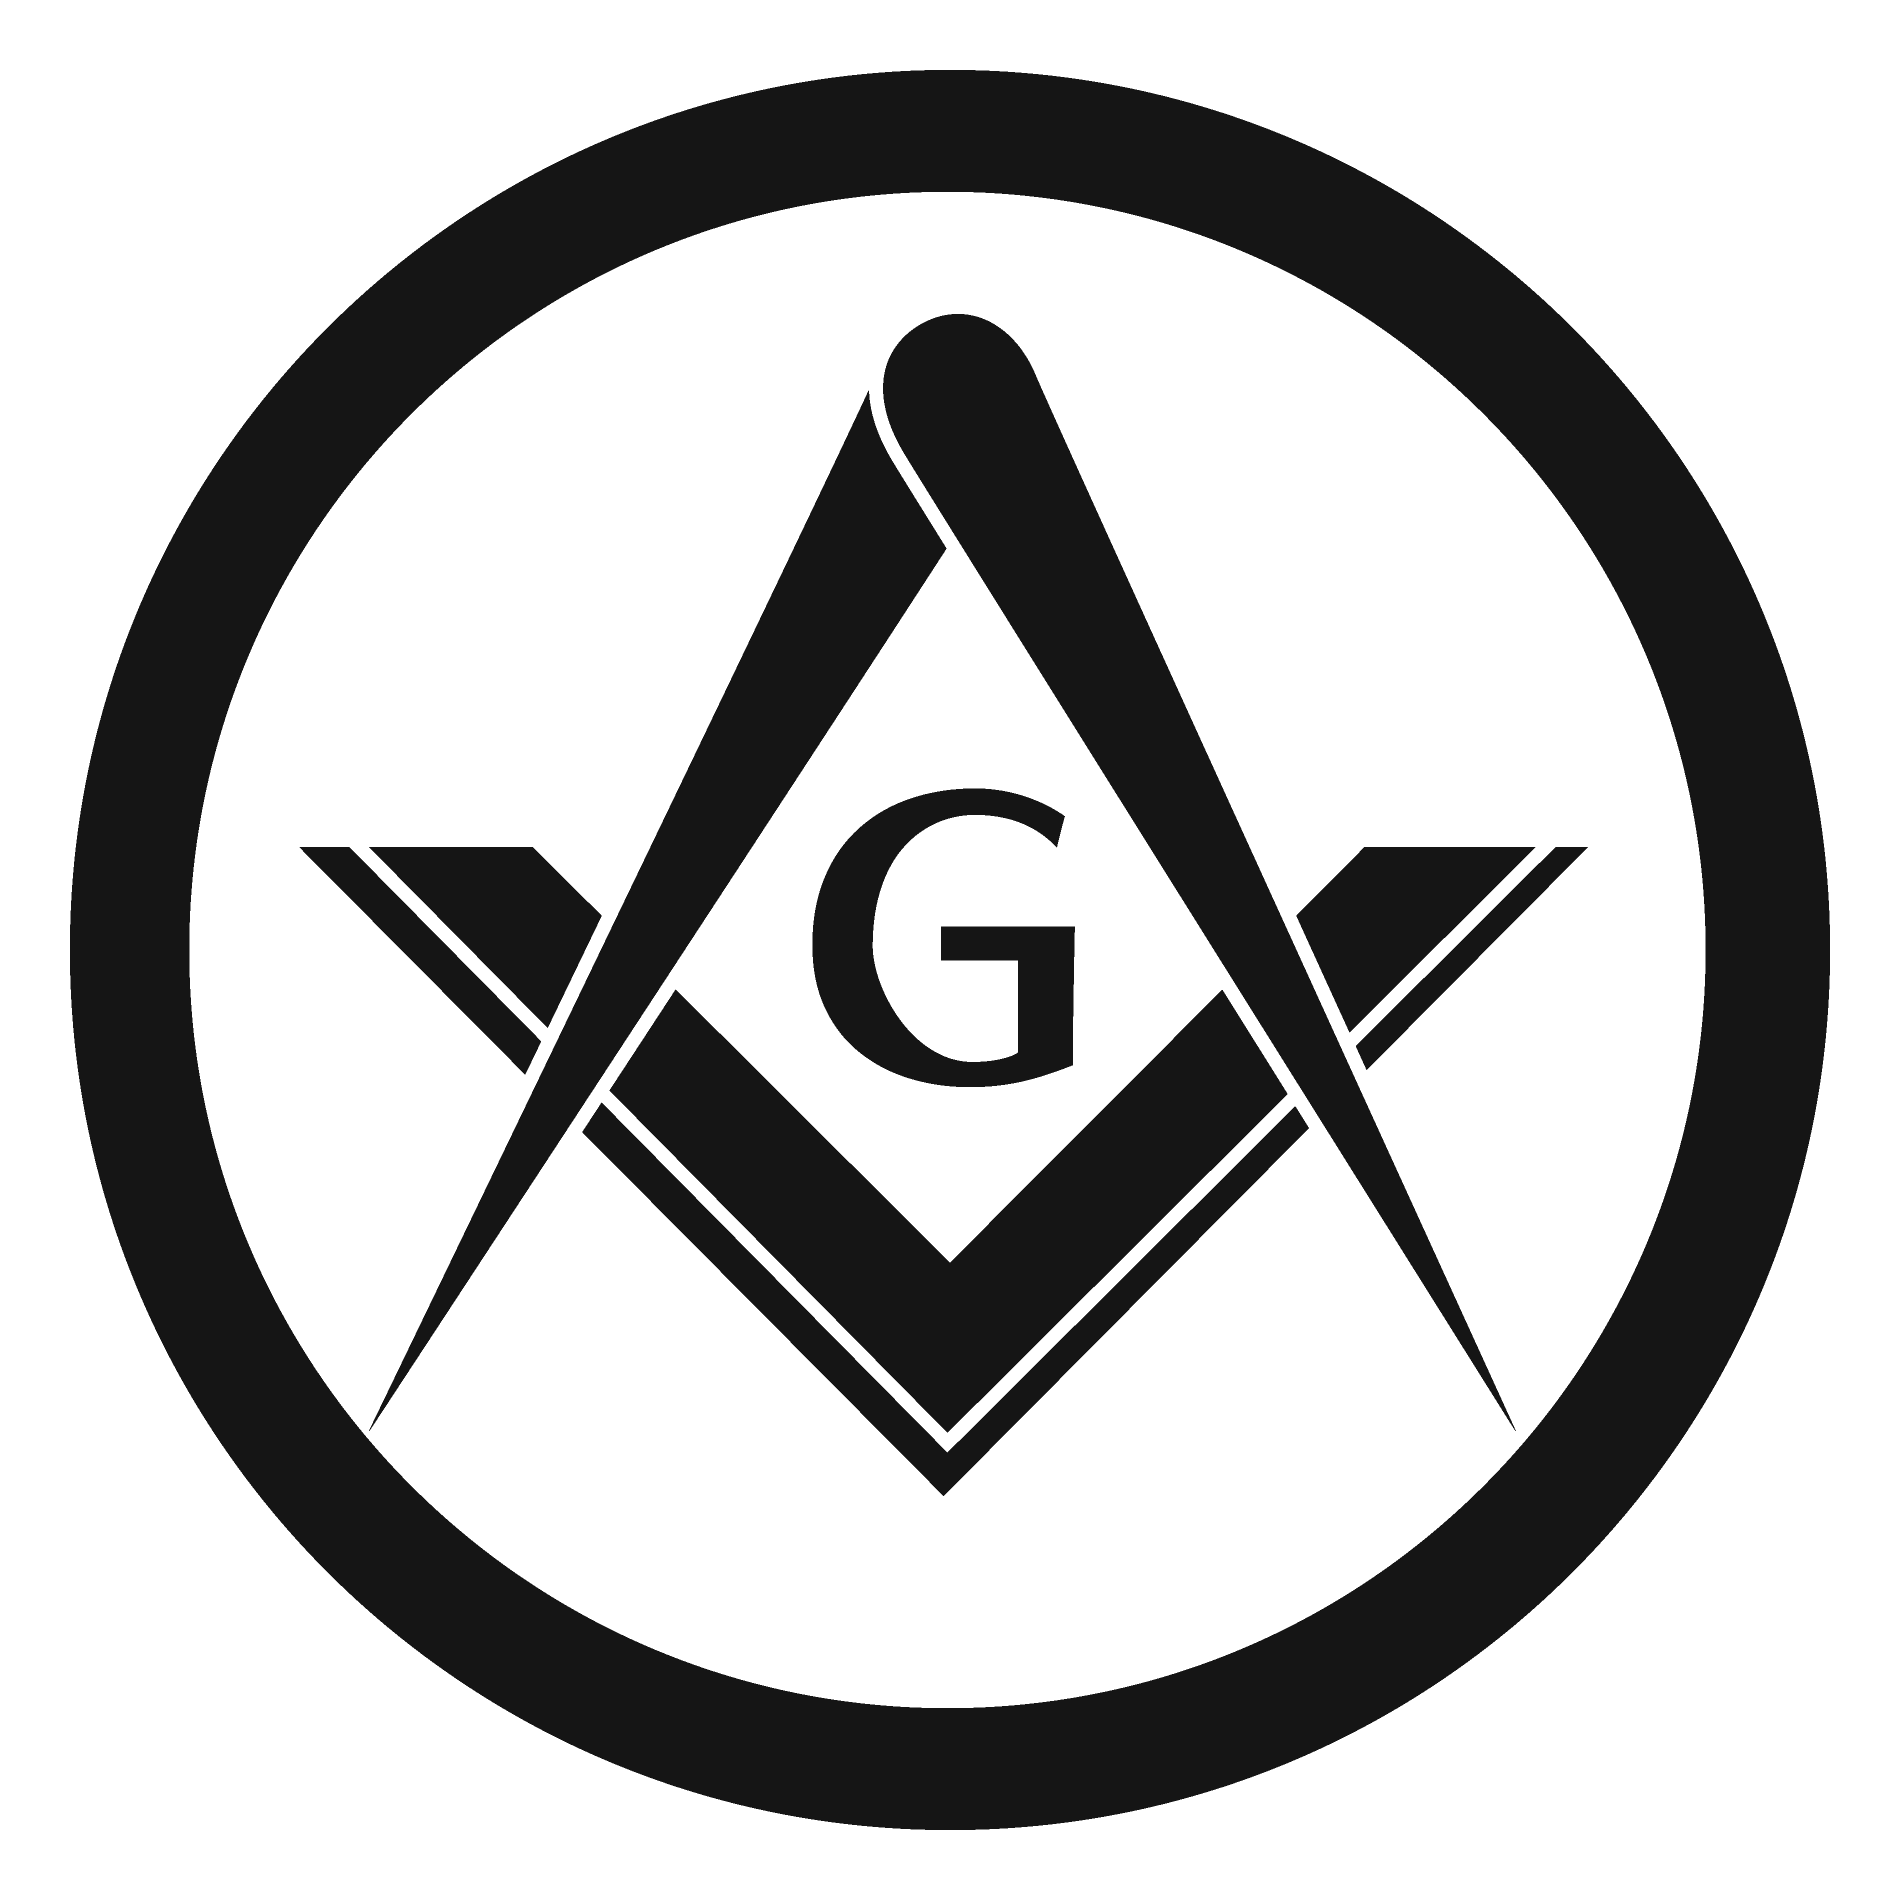 Freemason dating service